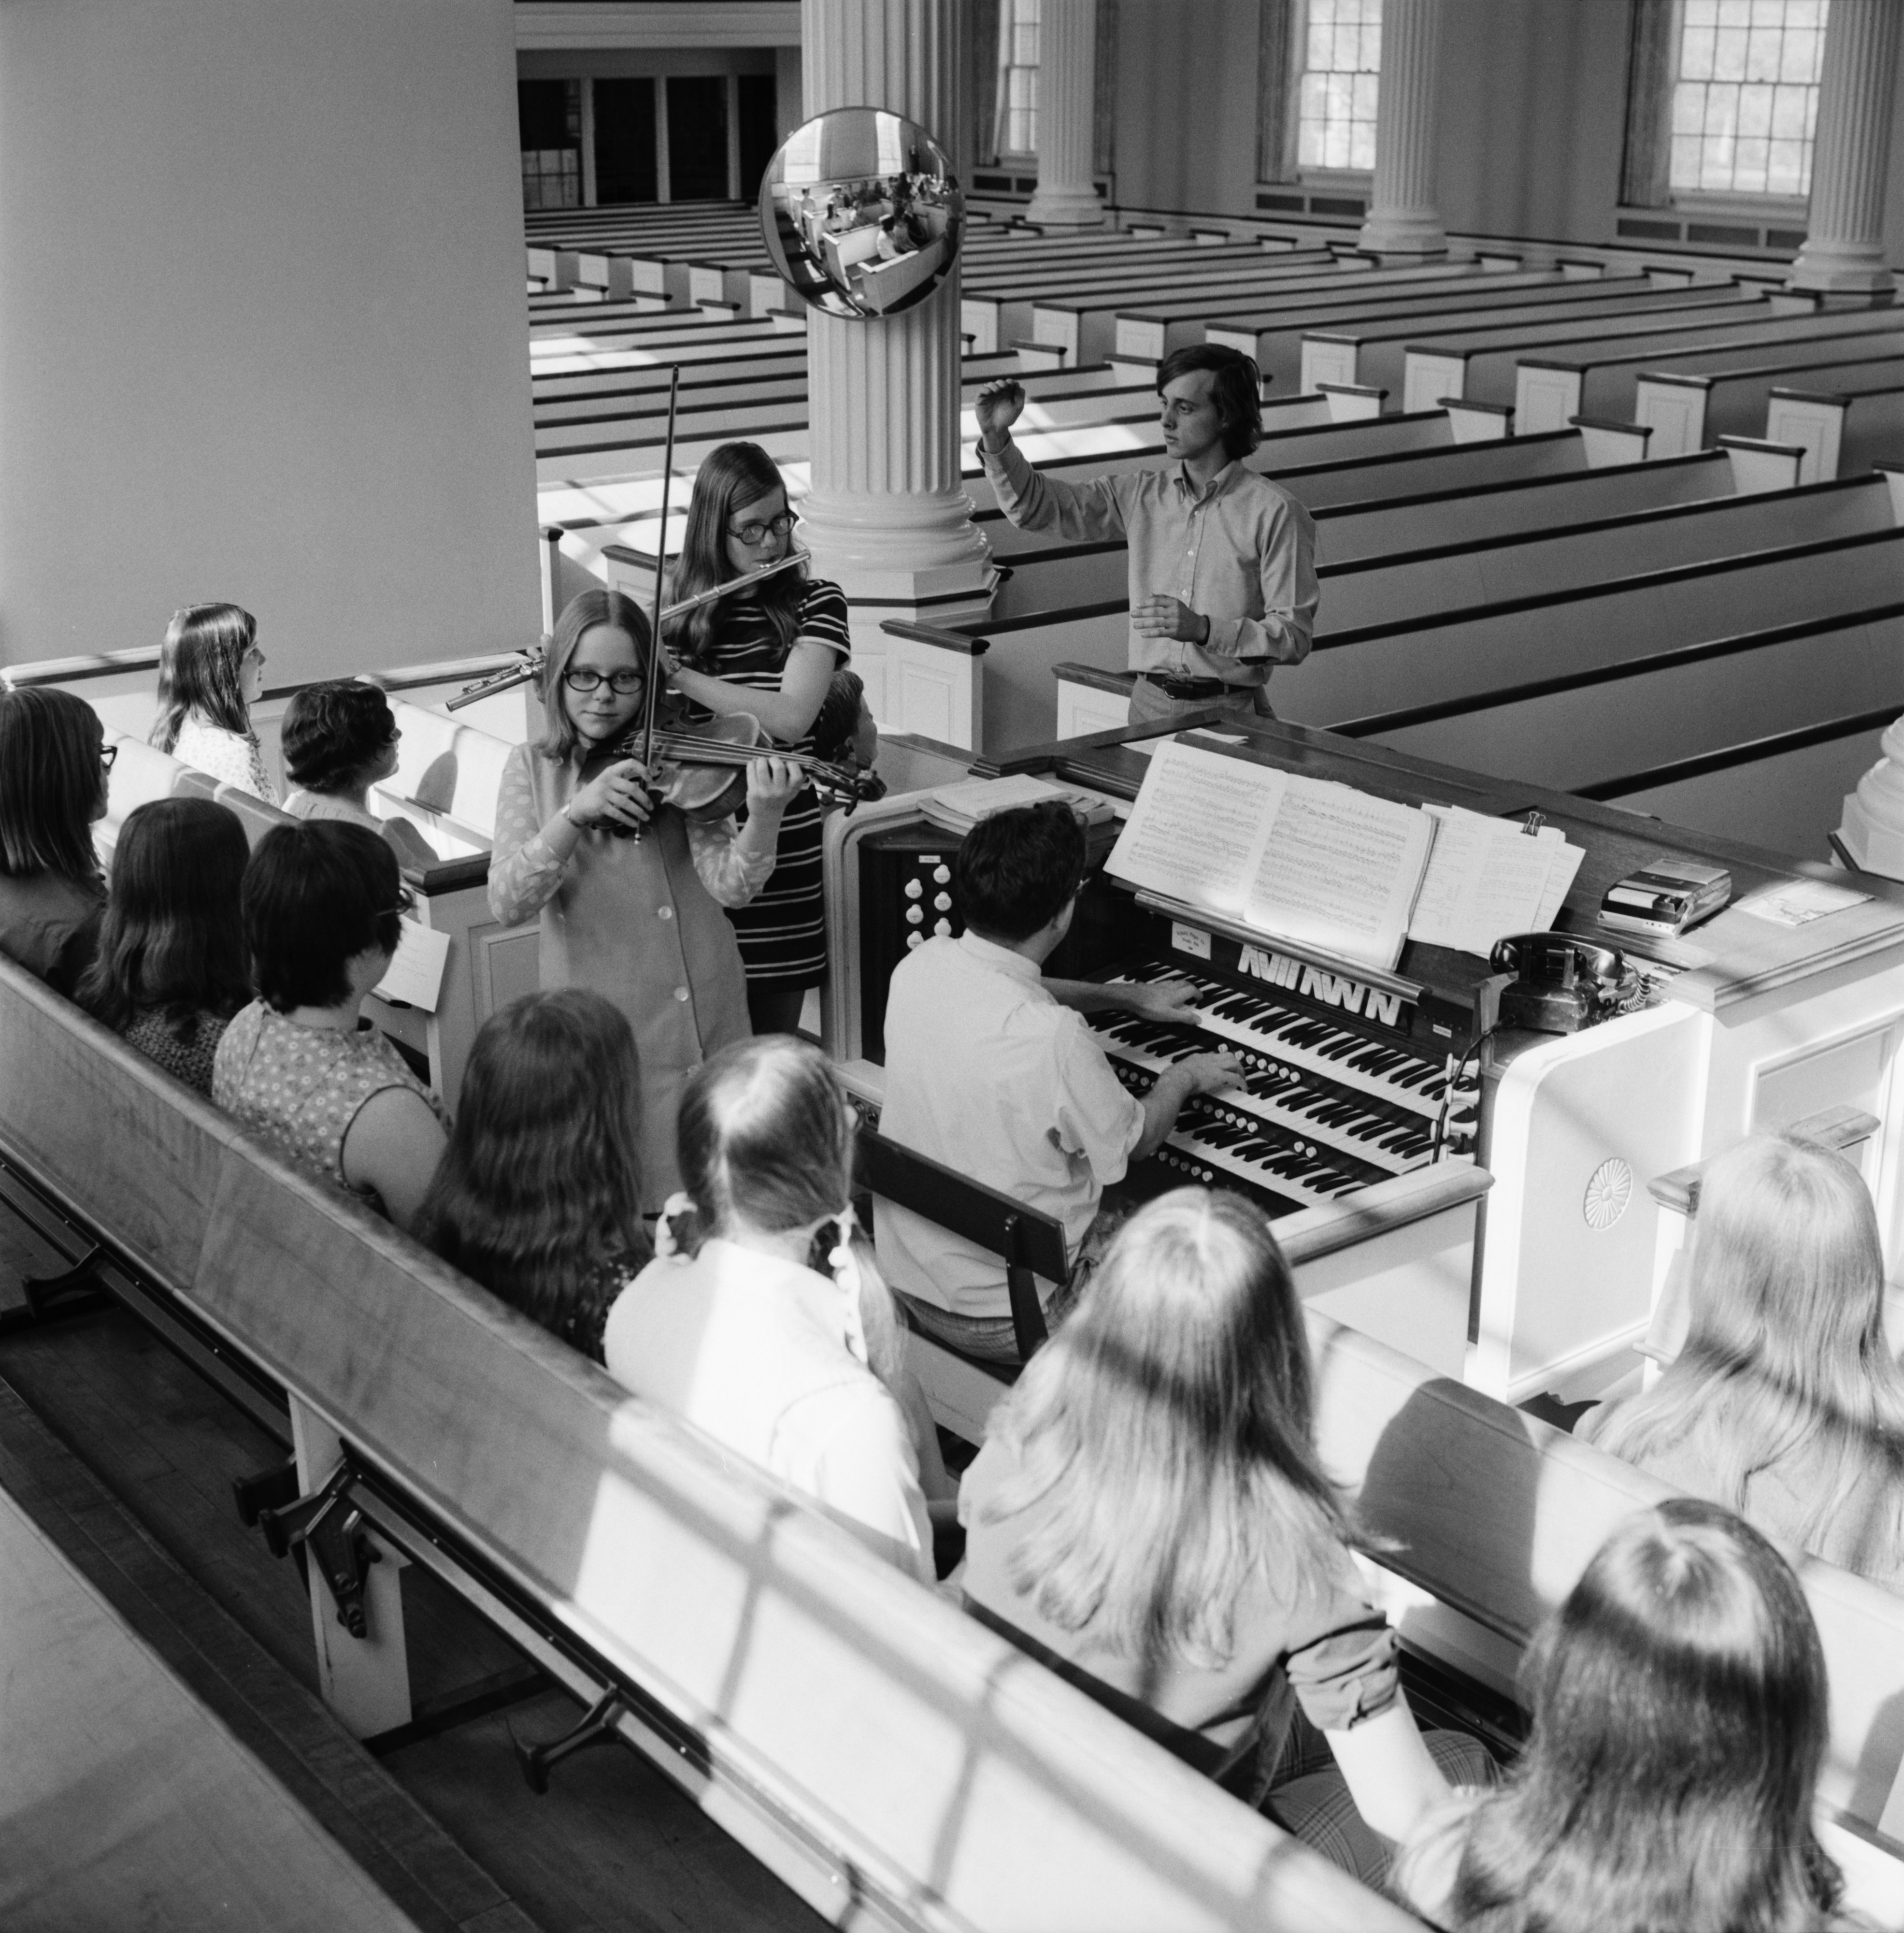 Zion Youth Choir And Instrumentalists, May 1971 image